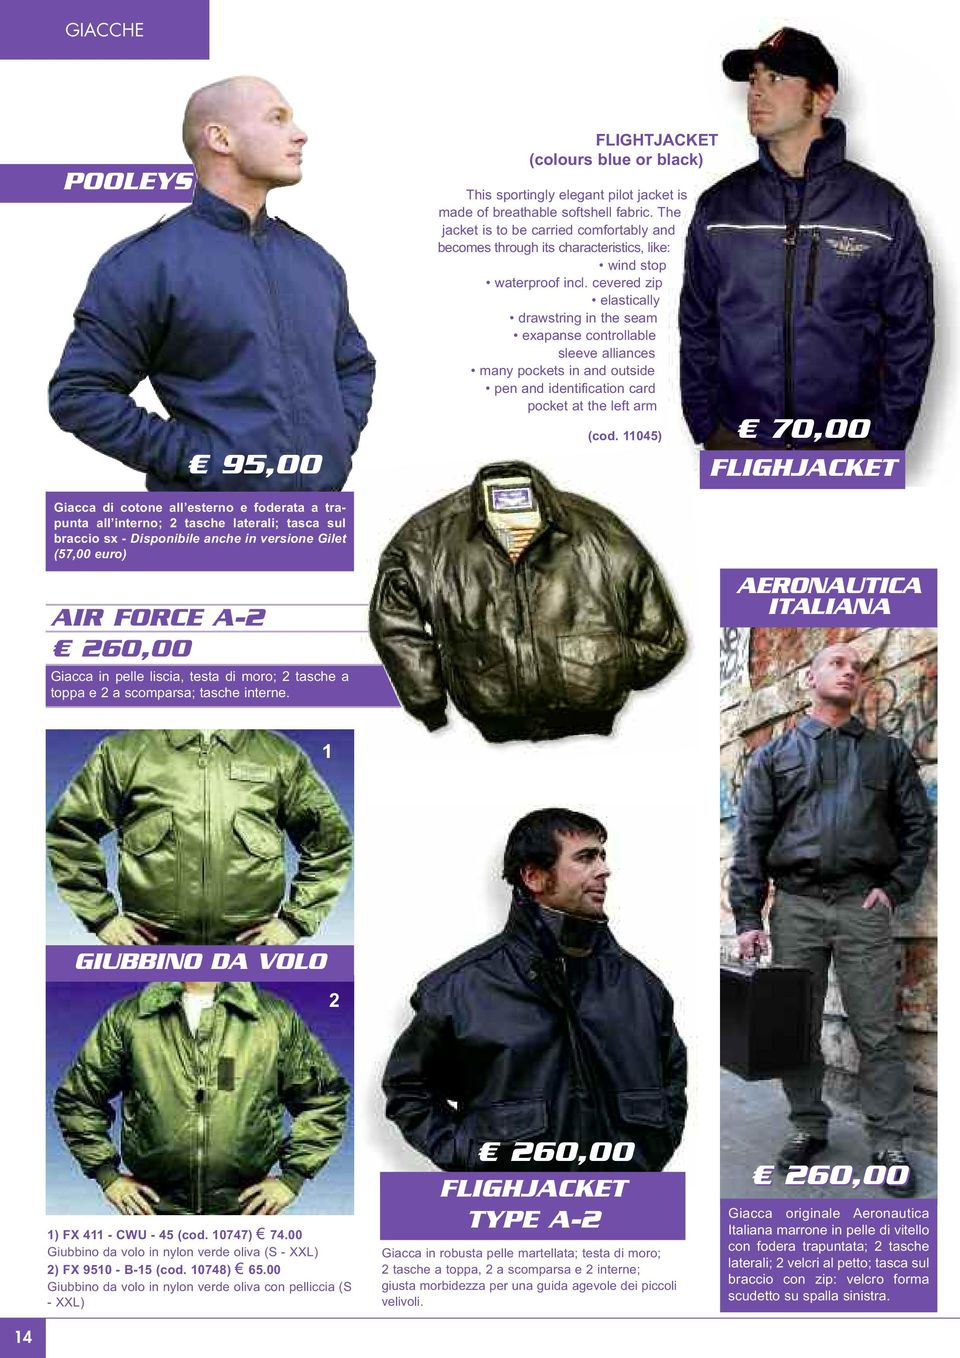 FLIGHTJACKET (colours blue or black) This sportingly elegant pilot jacket is made of breathable softshell fabric.